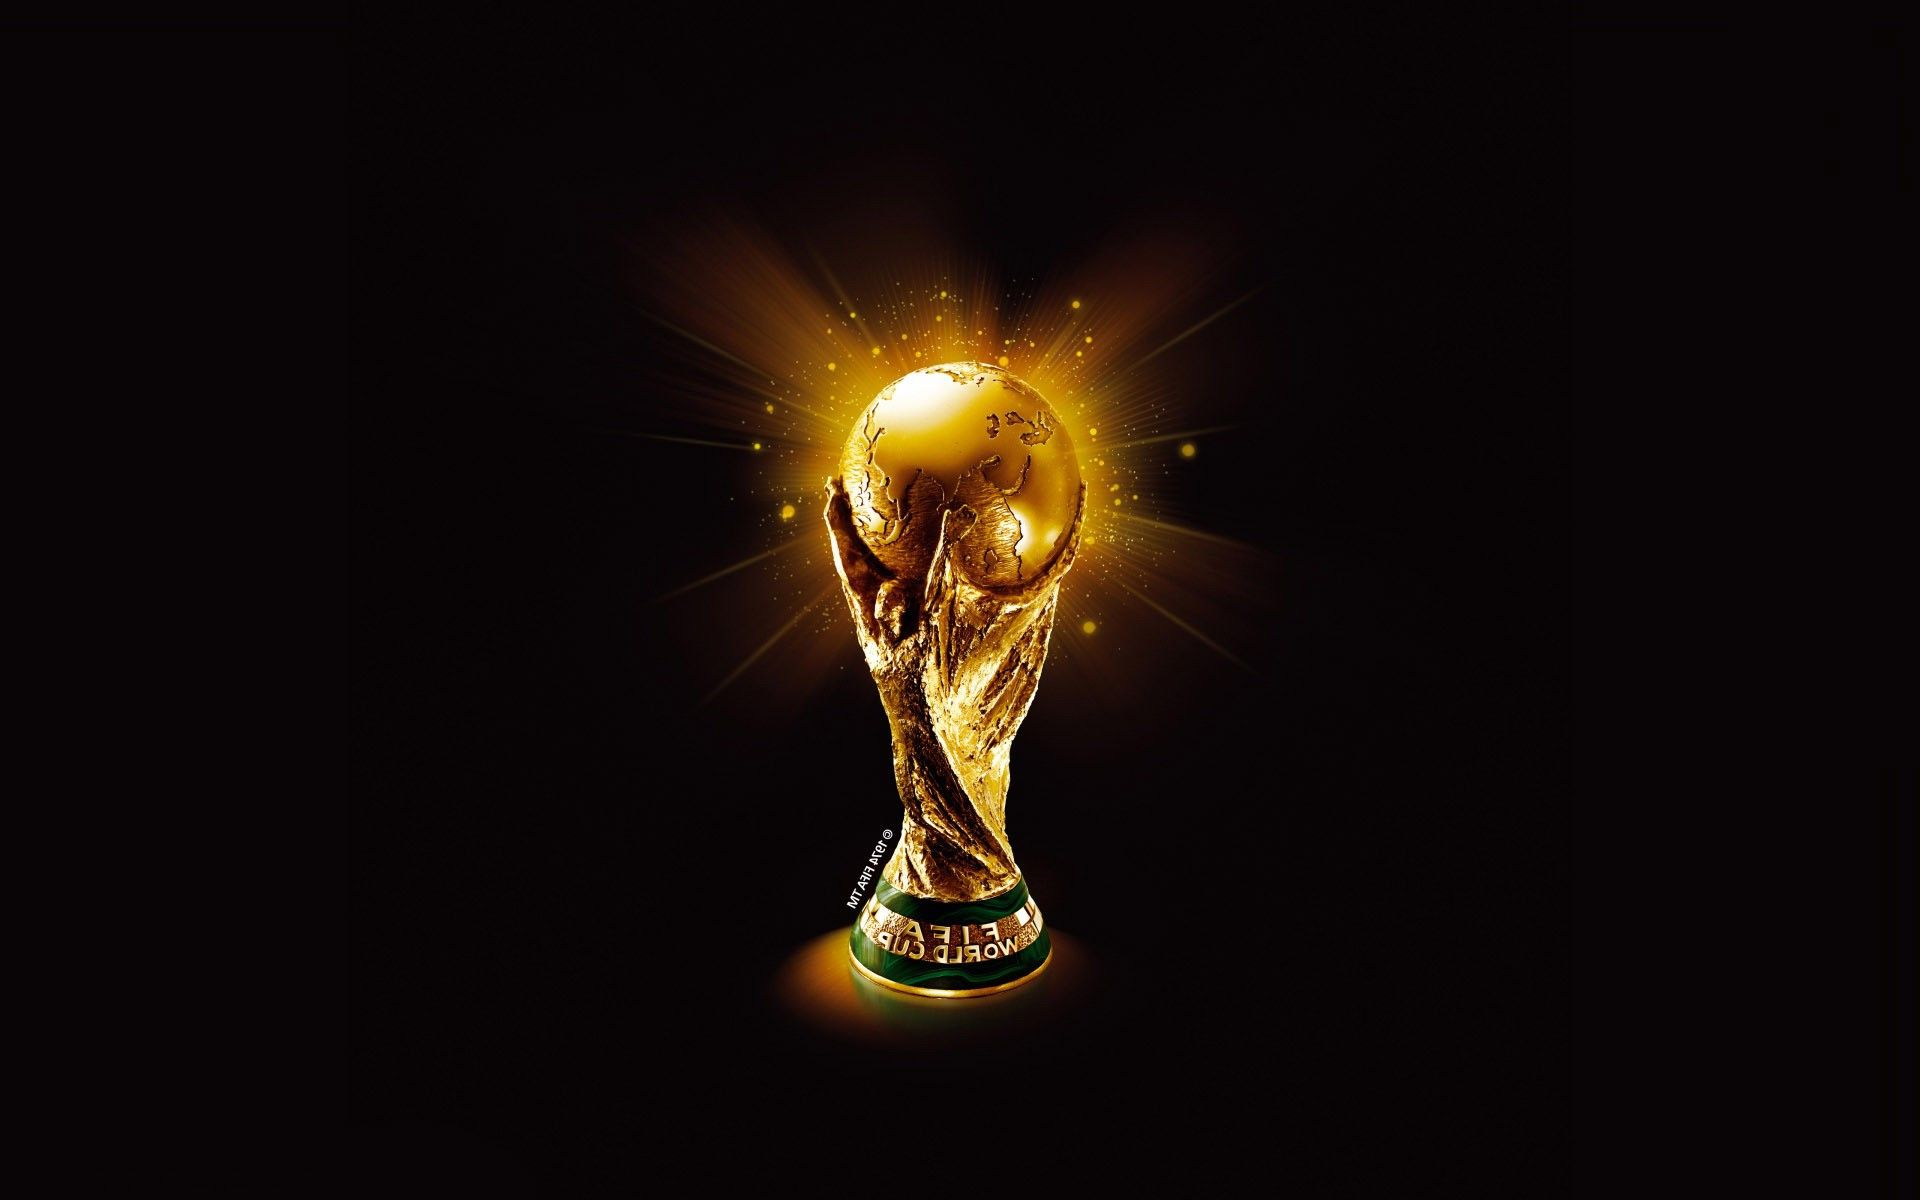 Fifa World Cup File Name 2014 Fifa World Cup Trophy World Cup Trophy World Cup Match Fifa World Cup